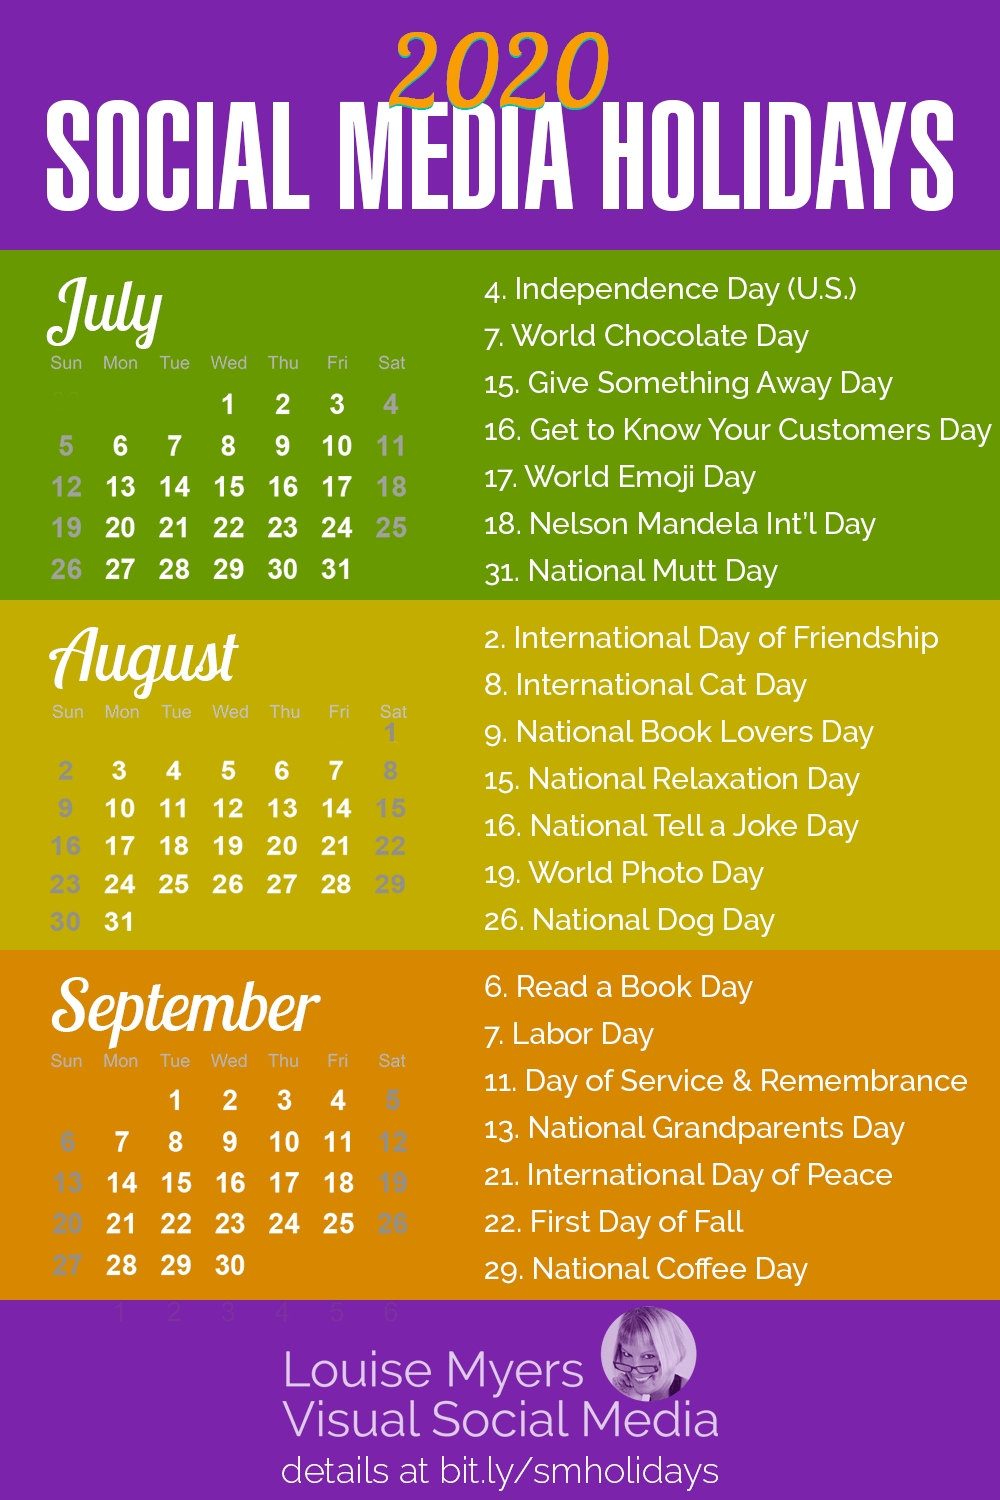 100 Social Media Holidays You Need In 2020 21: Indispensable!